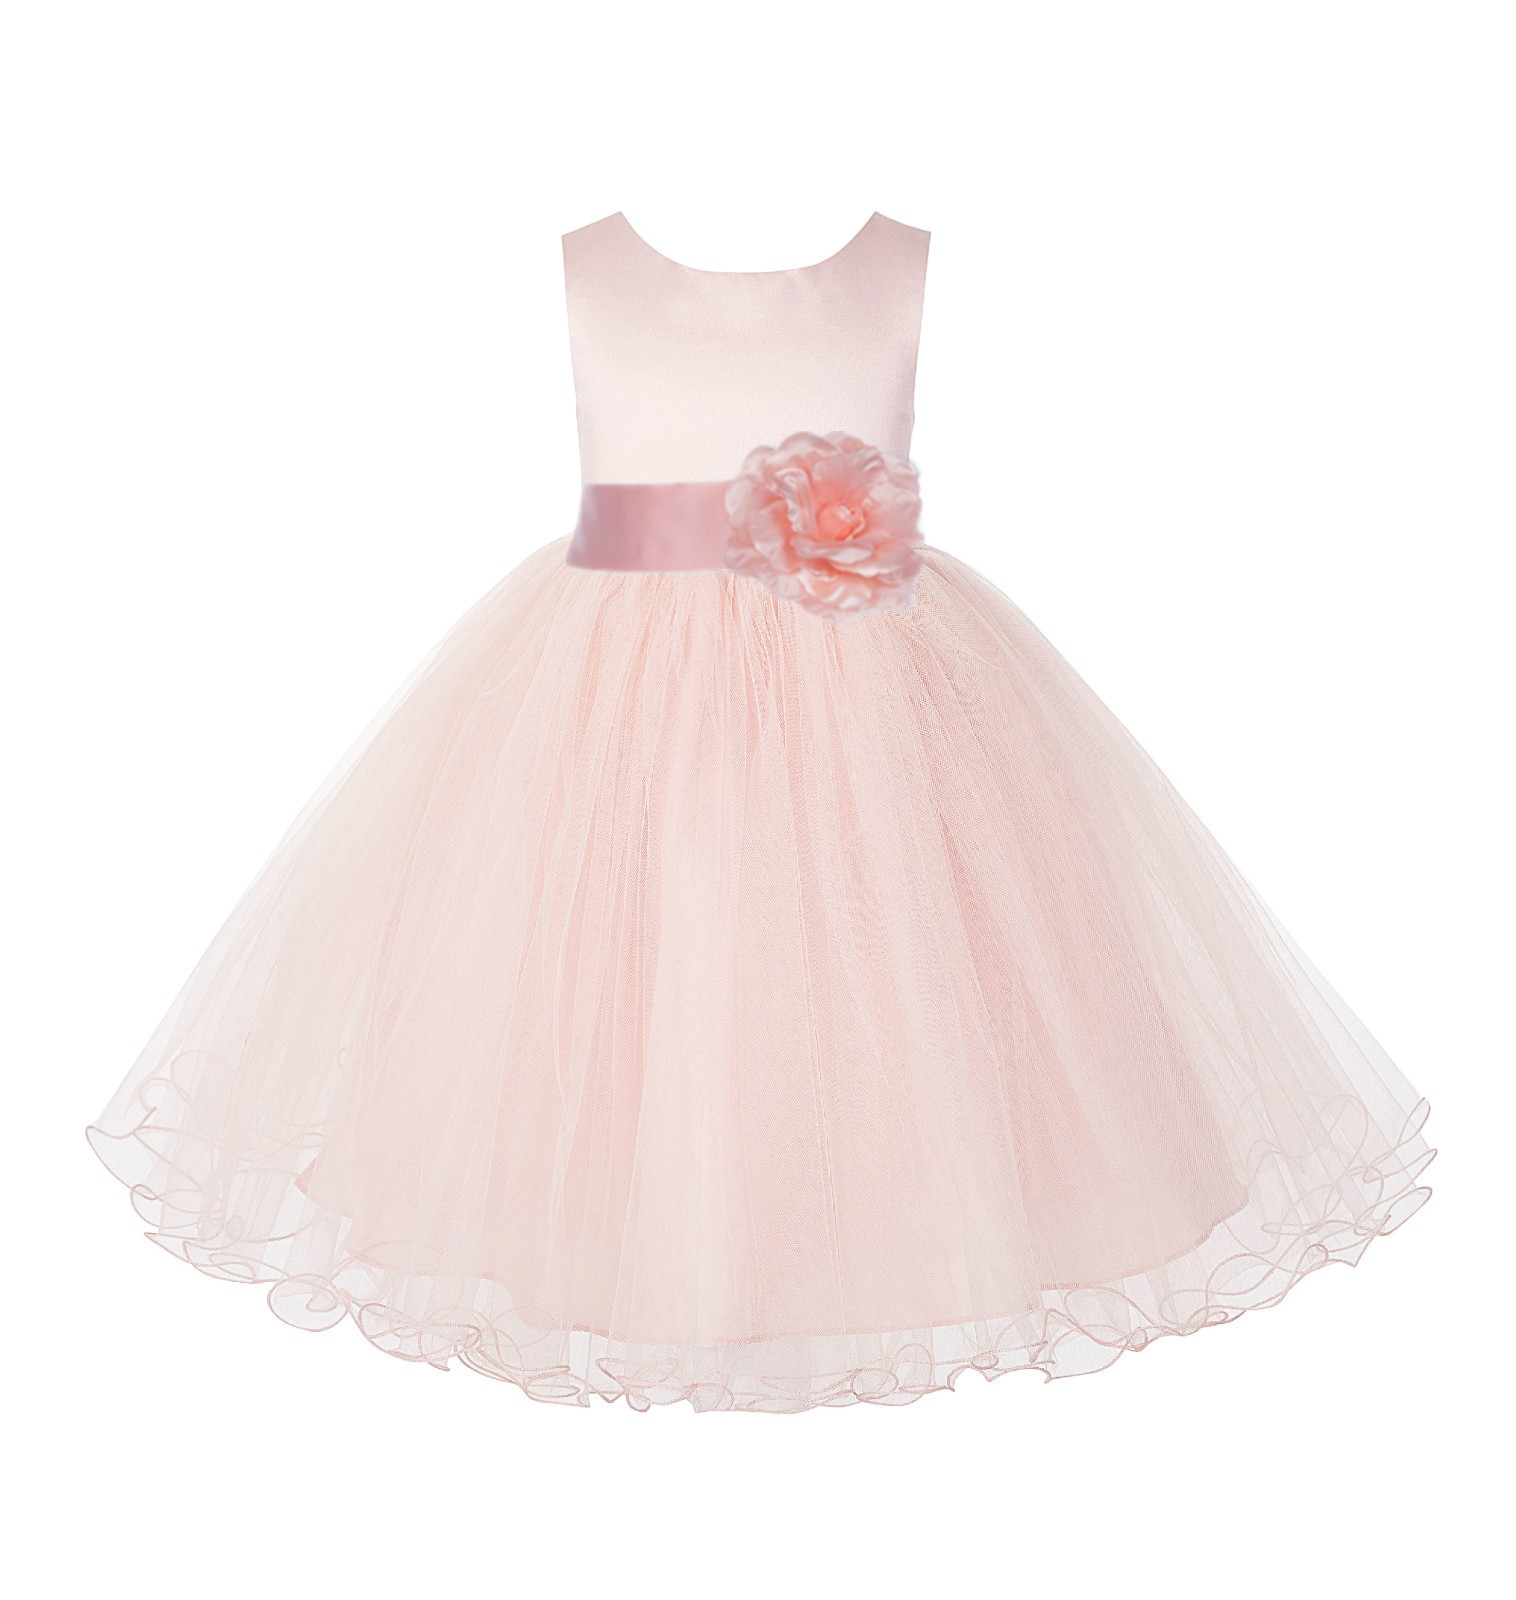 Blush Pink / Peach Rattail Edge Flower Girl Dress Pageant Recital 829S